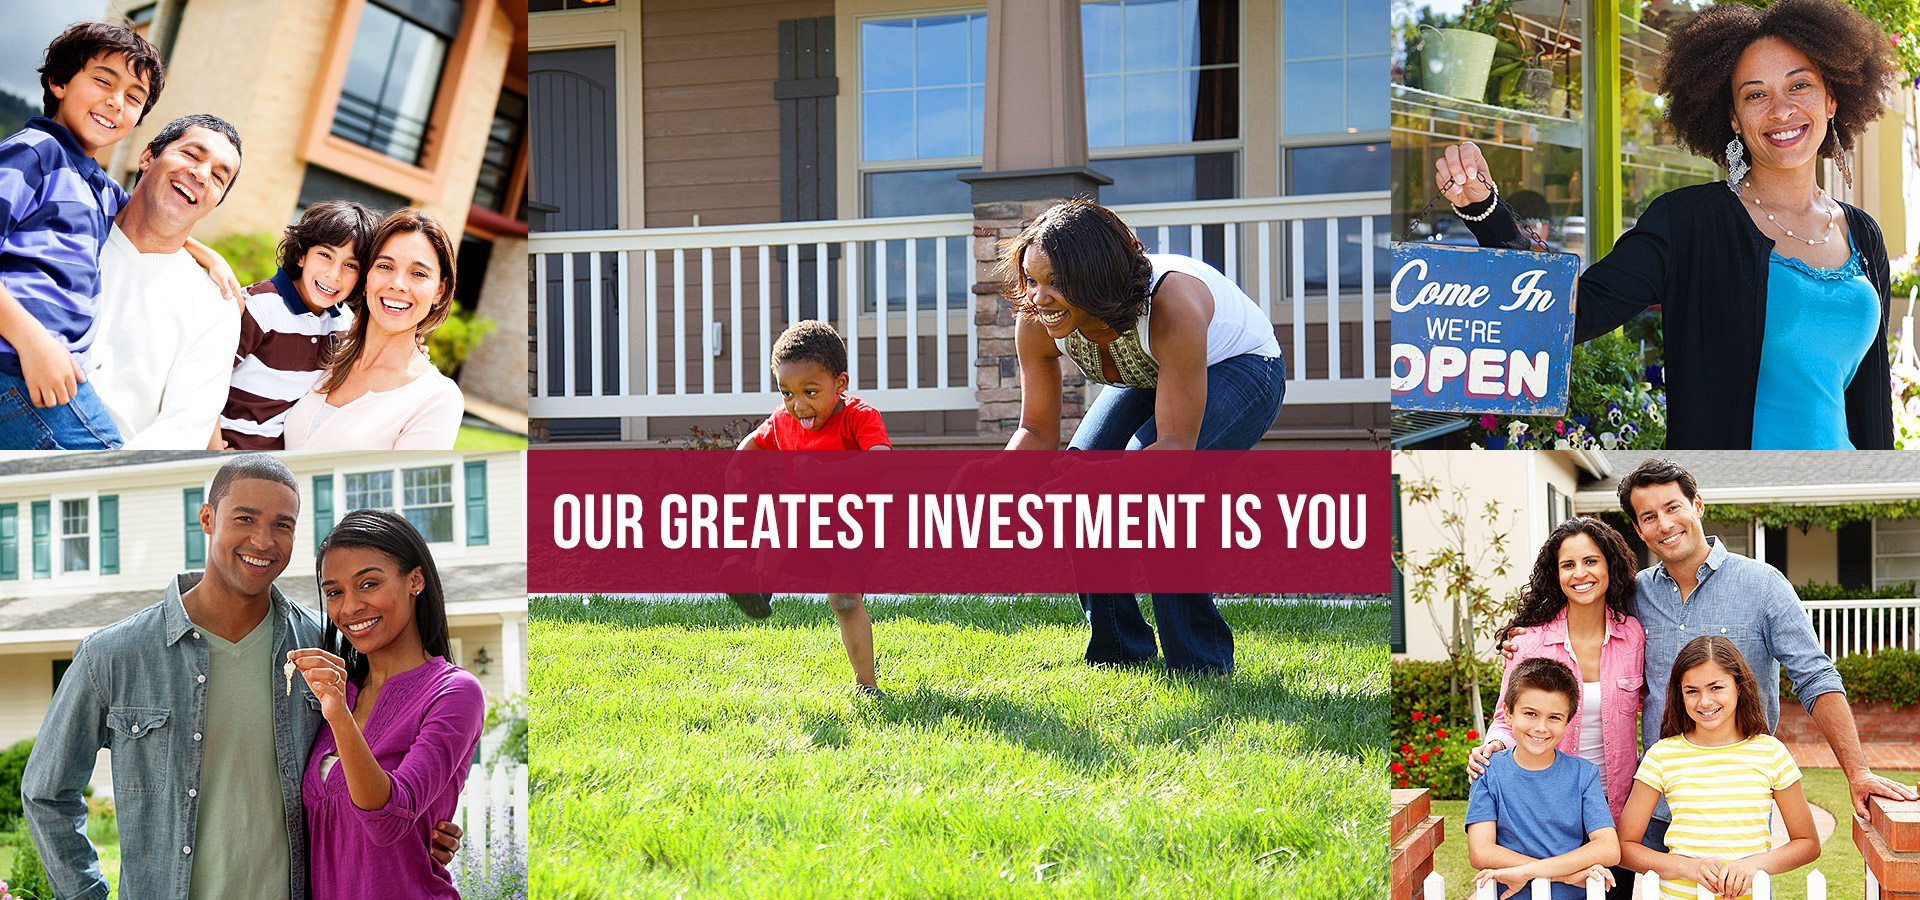 Our Greatest Investment Is You